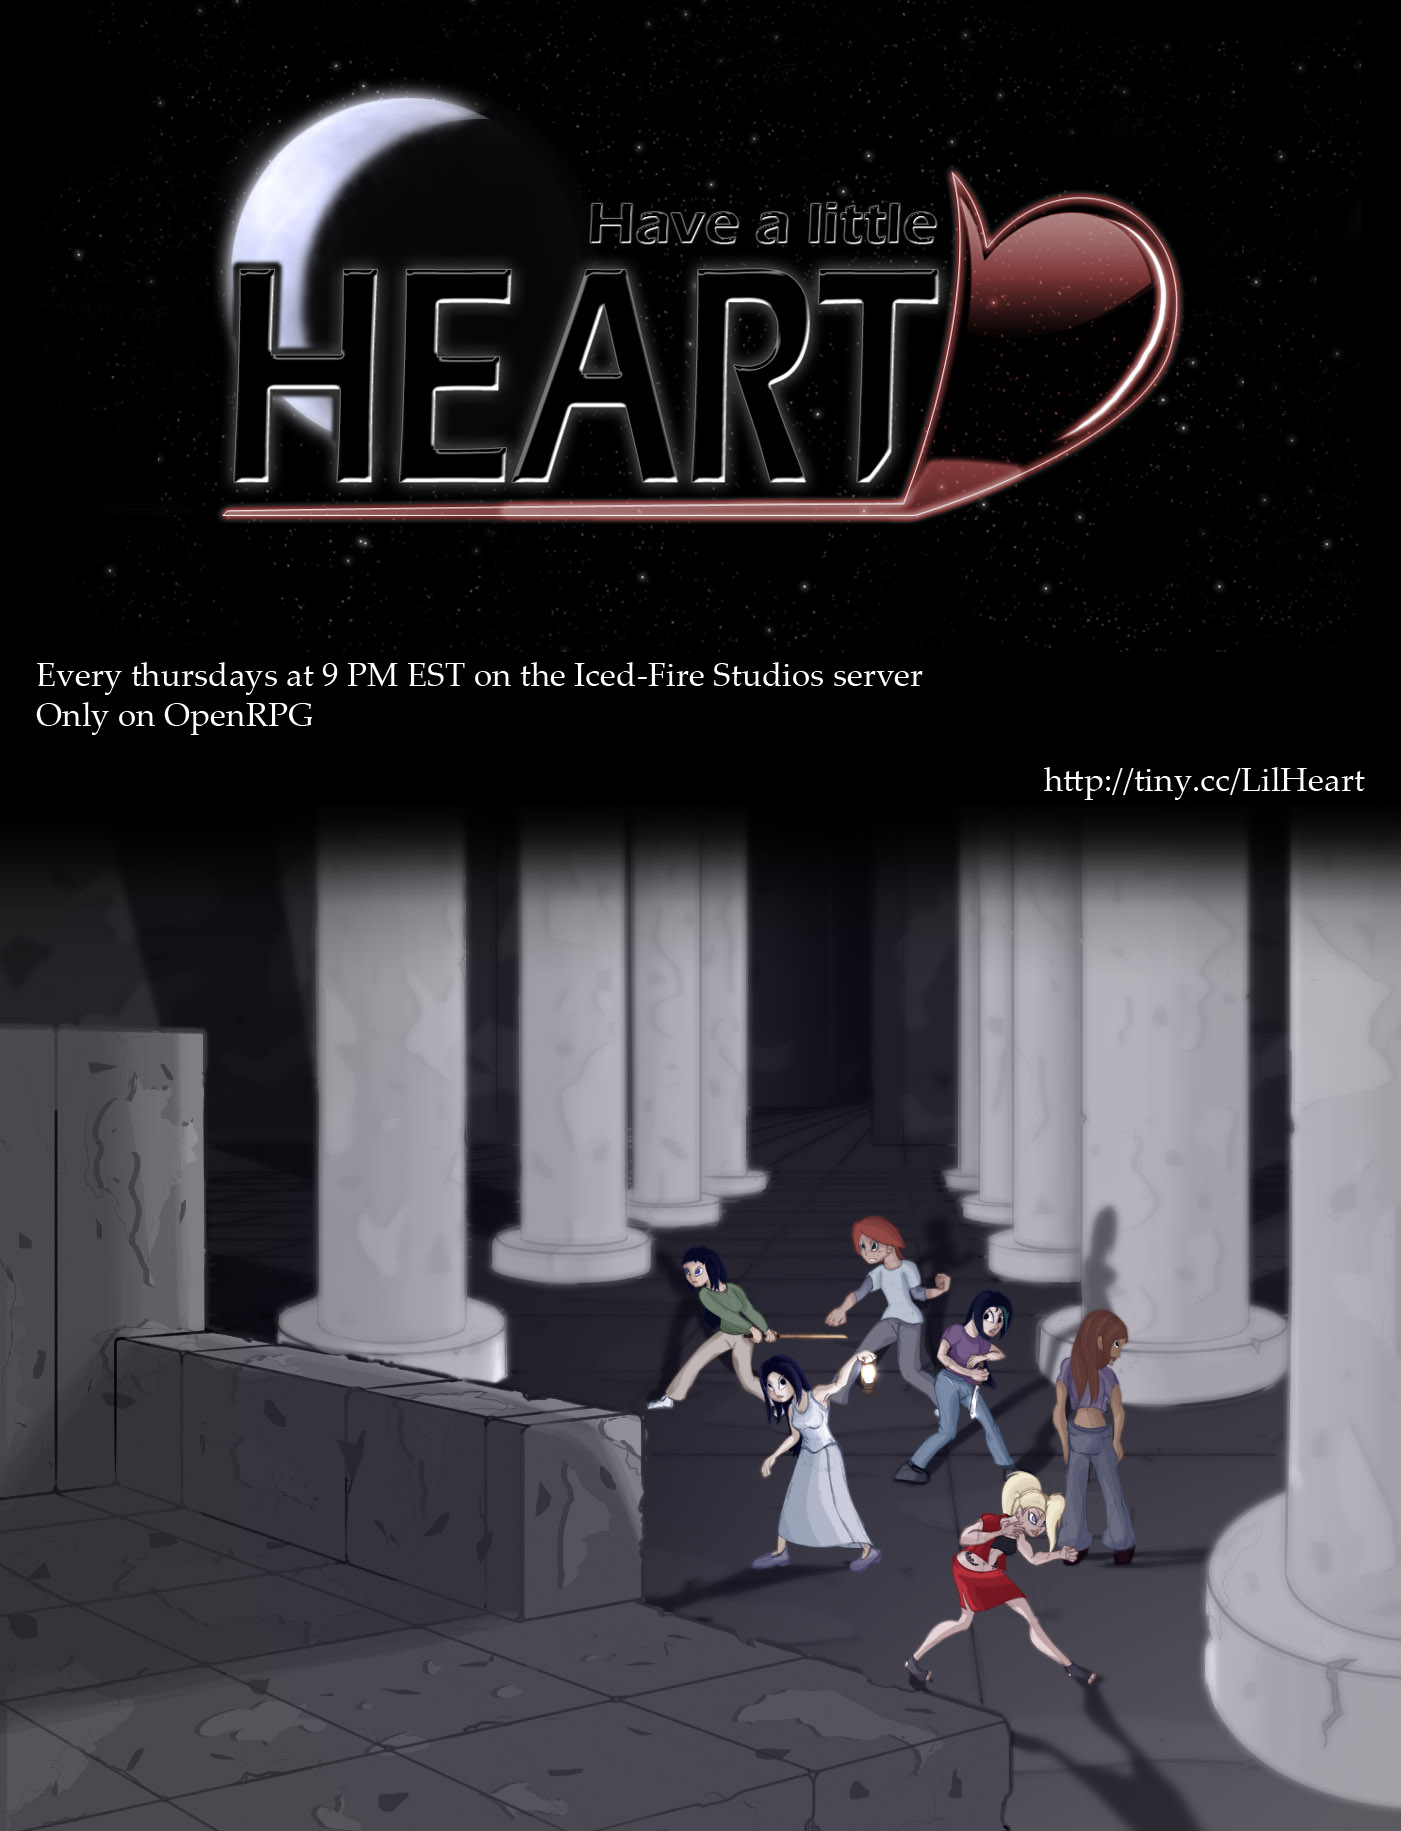 Have a little Heart promo post